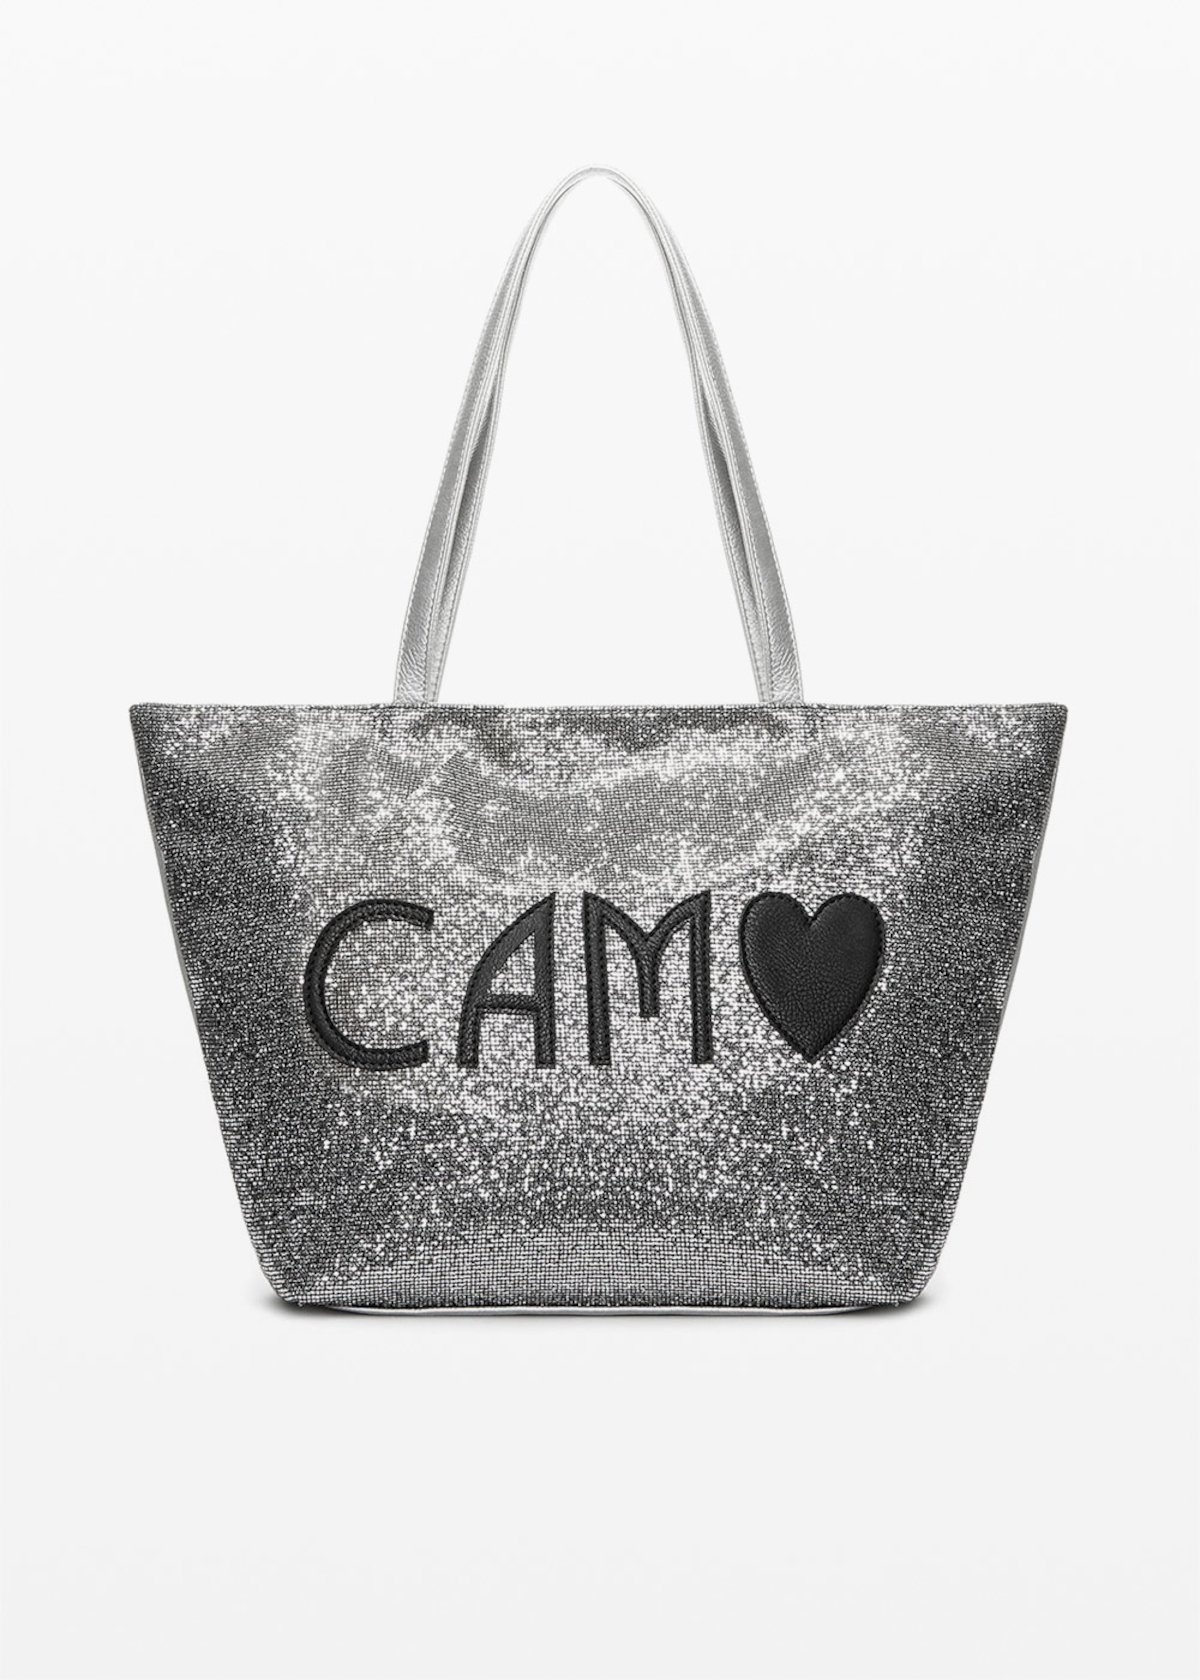 38c10dfaa9 Bondy Shopping Bag In Sparkling Material | Camomilla Italia